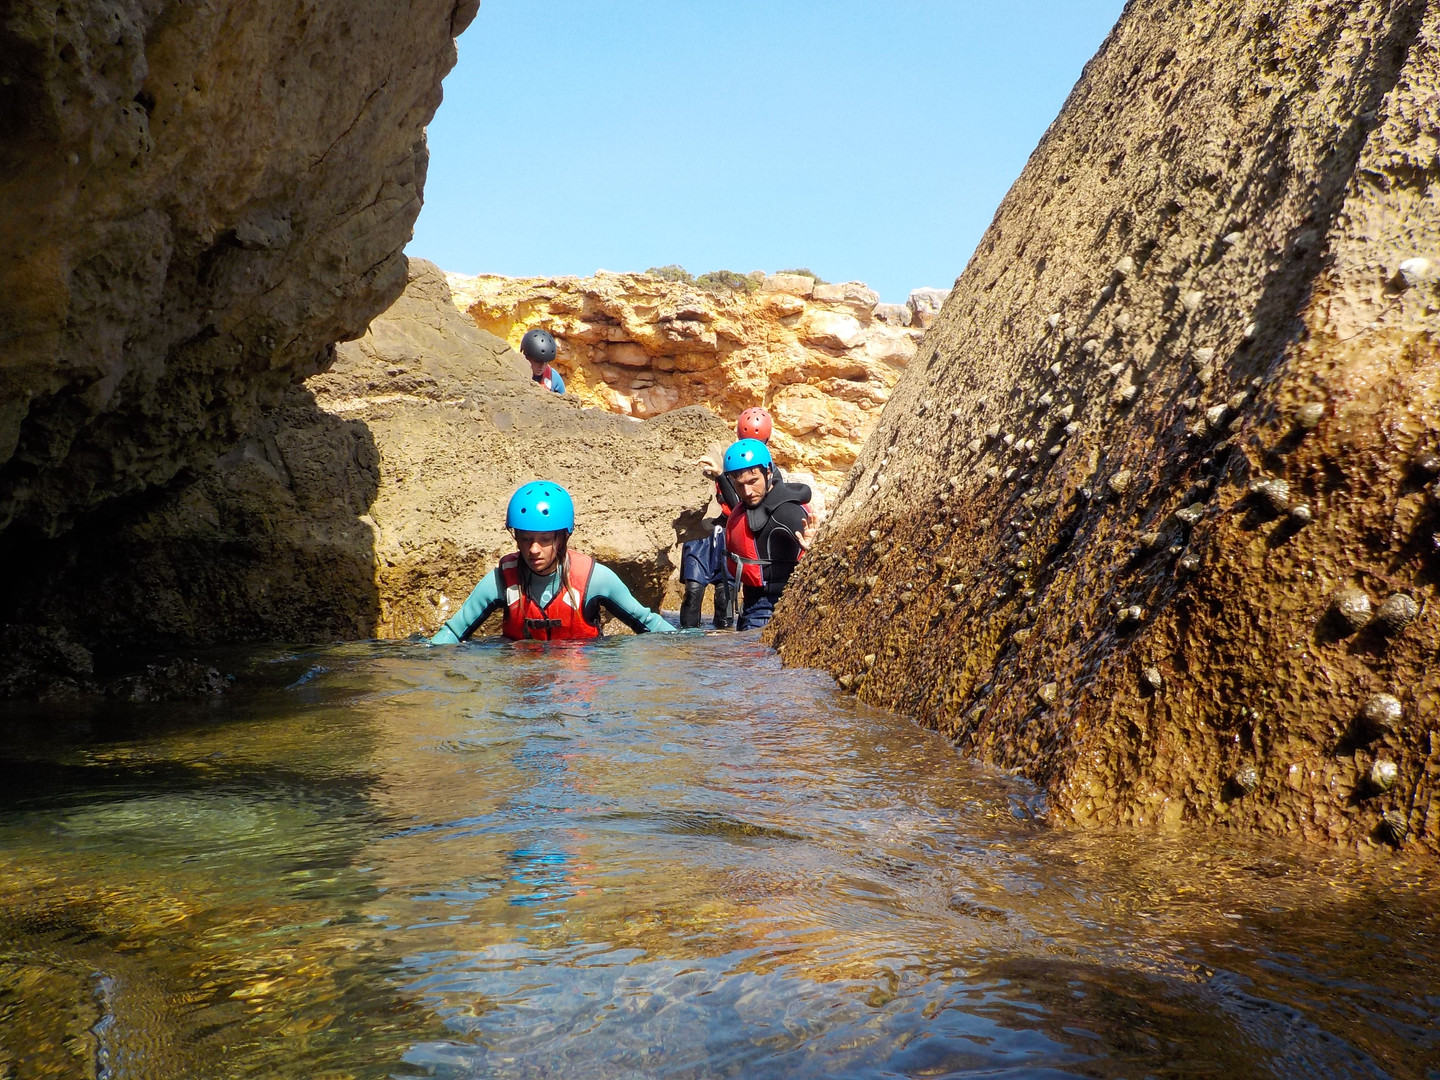 Exploring the nooks and crannies of coastline Algarve